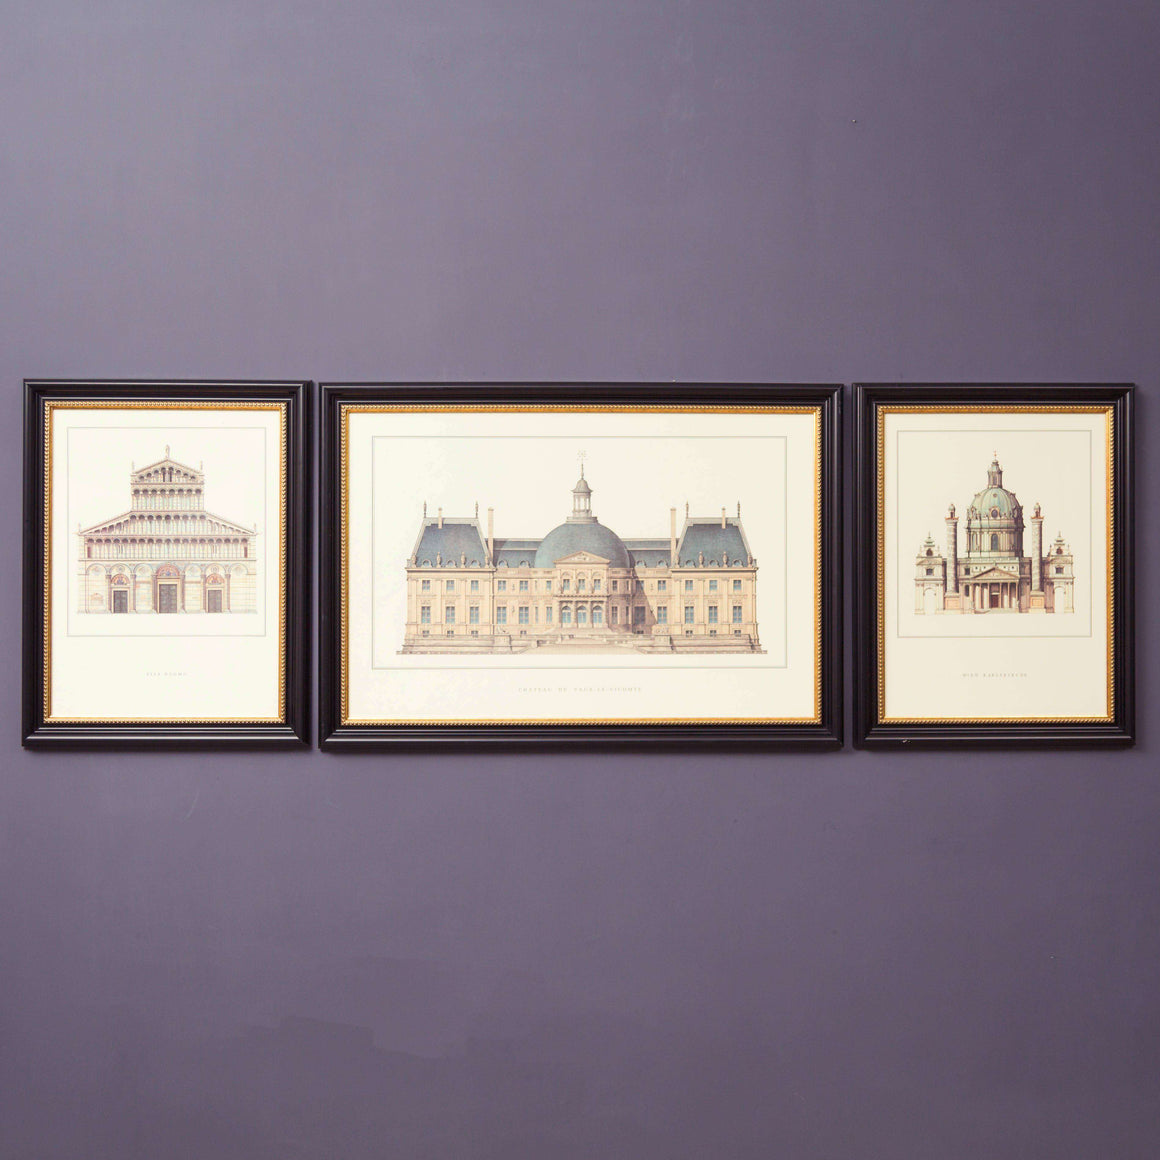 The Château de Vaux-le-Vicomte - Set of 3